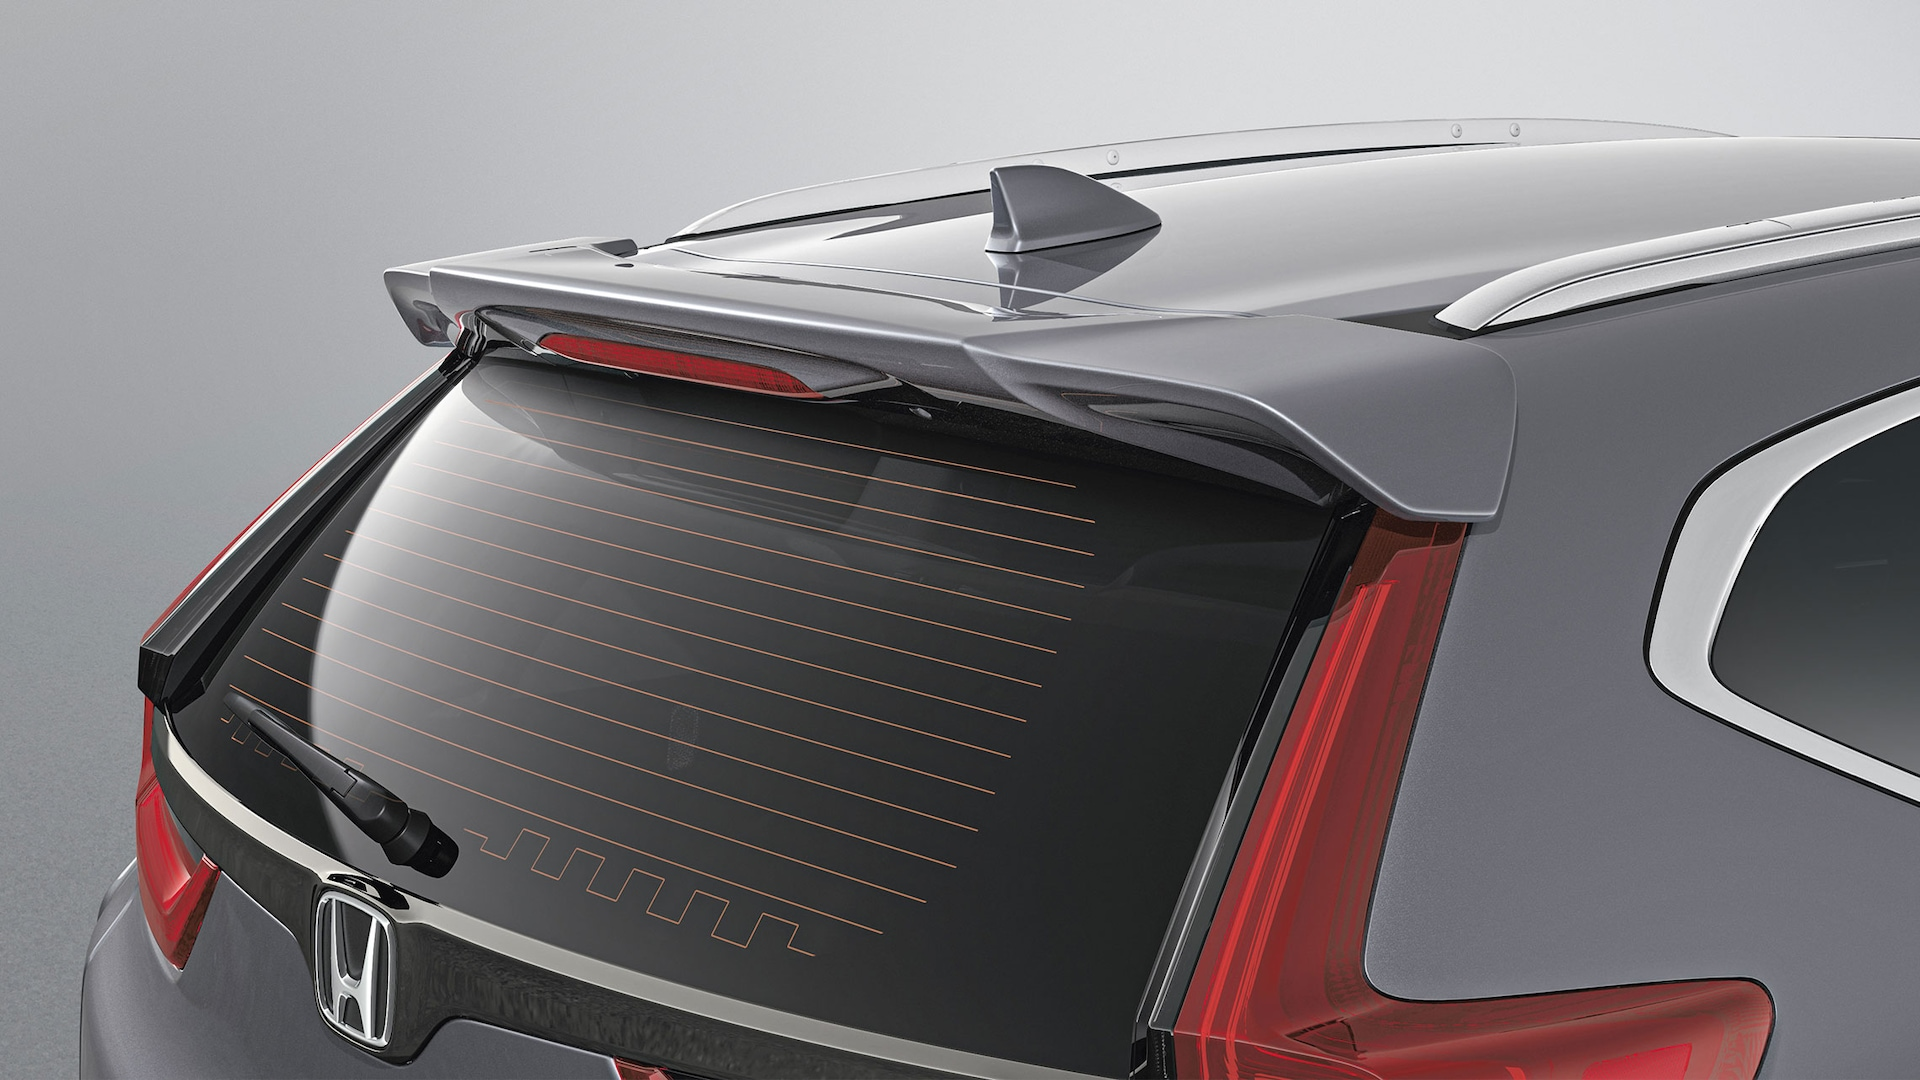 Detail of accessory tailgate spoiler on the 2020 Honda CR-V.